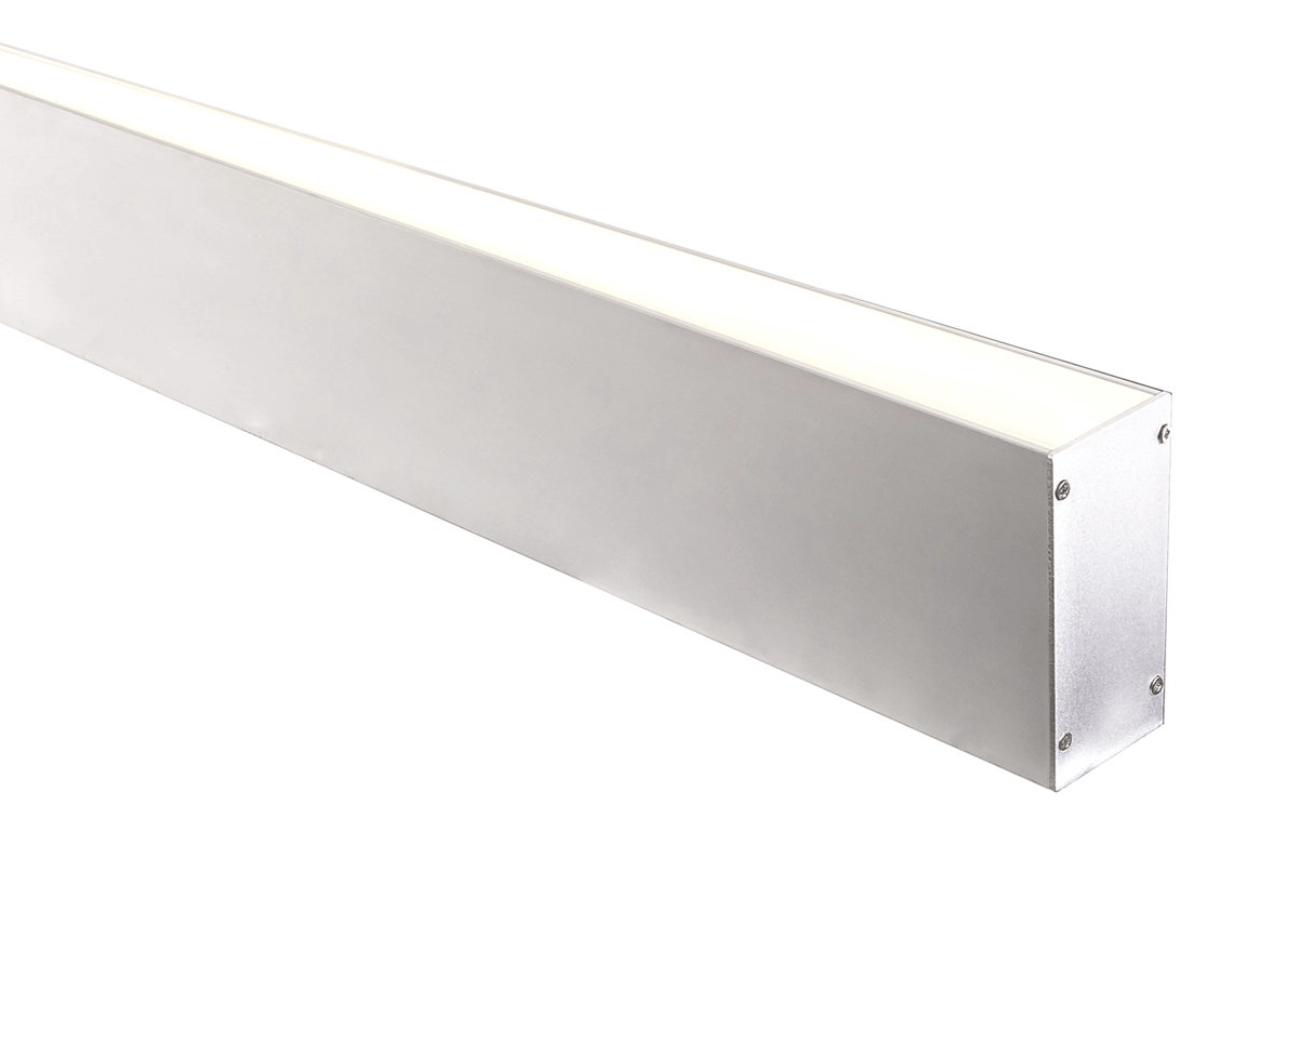 Profiles Suspended Profile - Square - HV9693-3890 lighting shops lighting stores LED lights  lighting designer